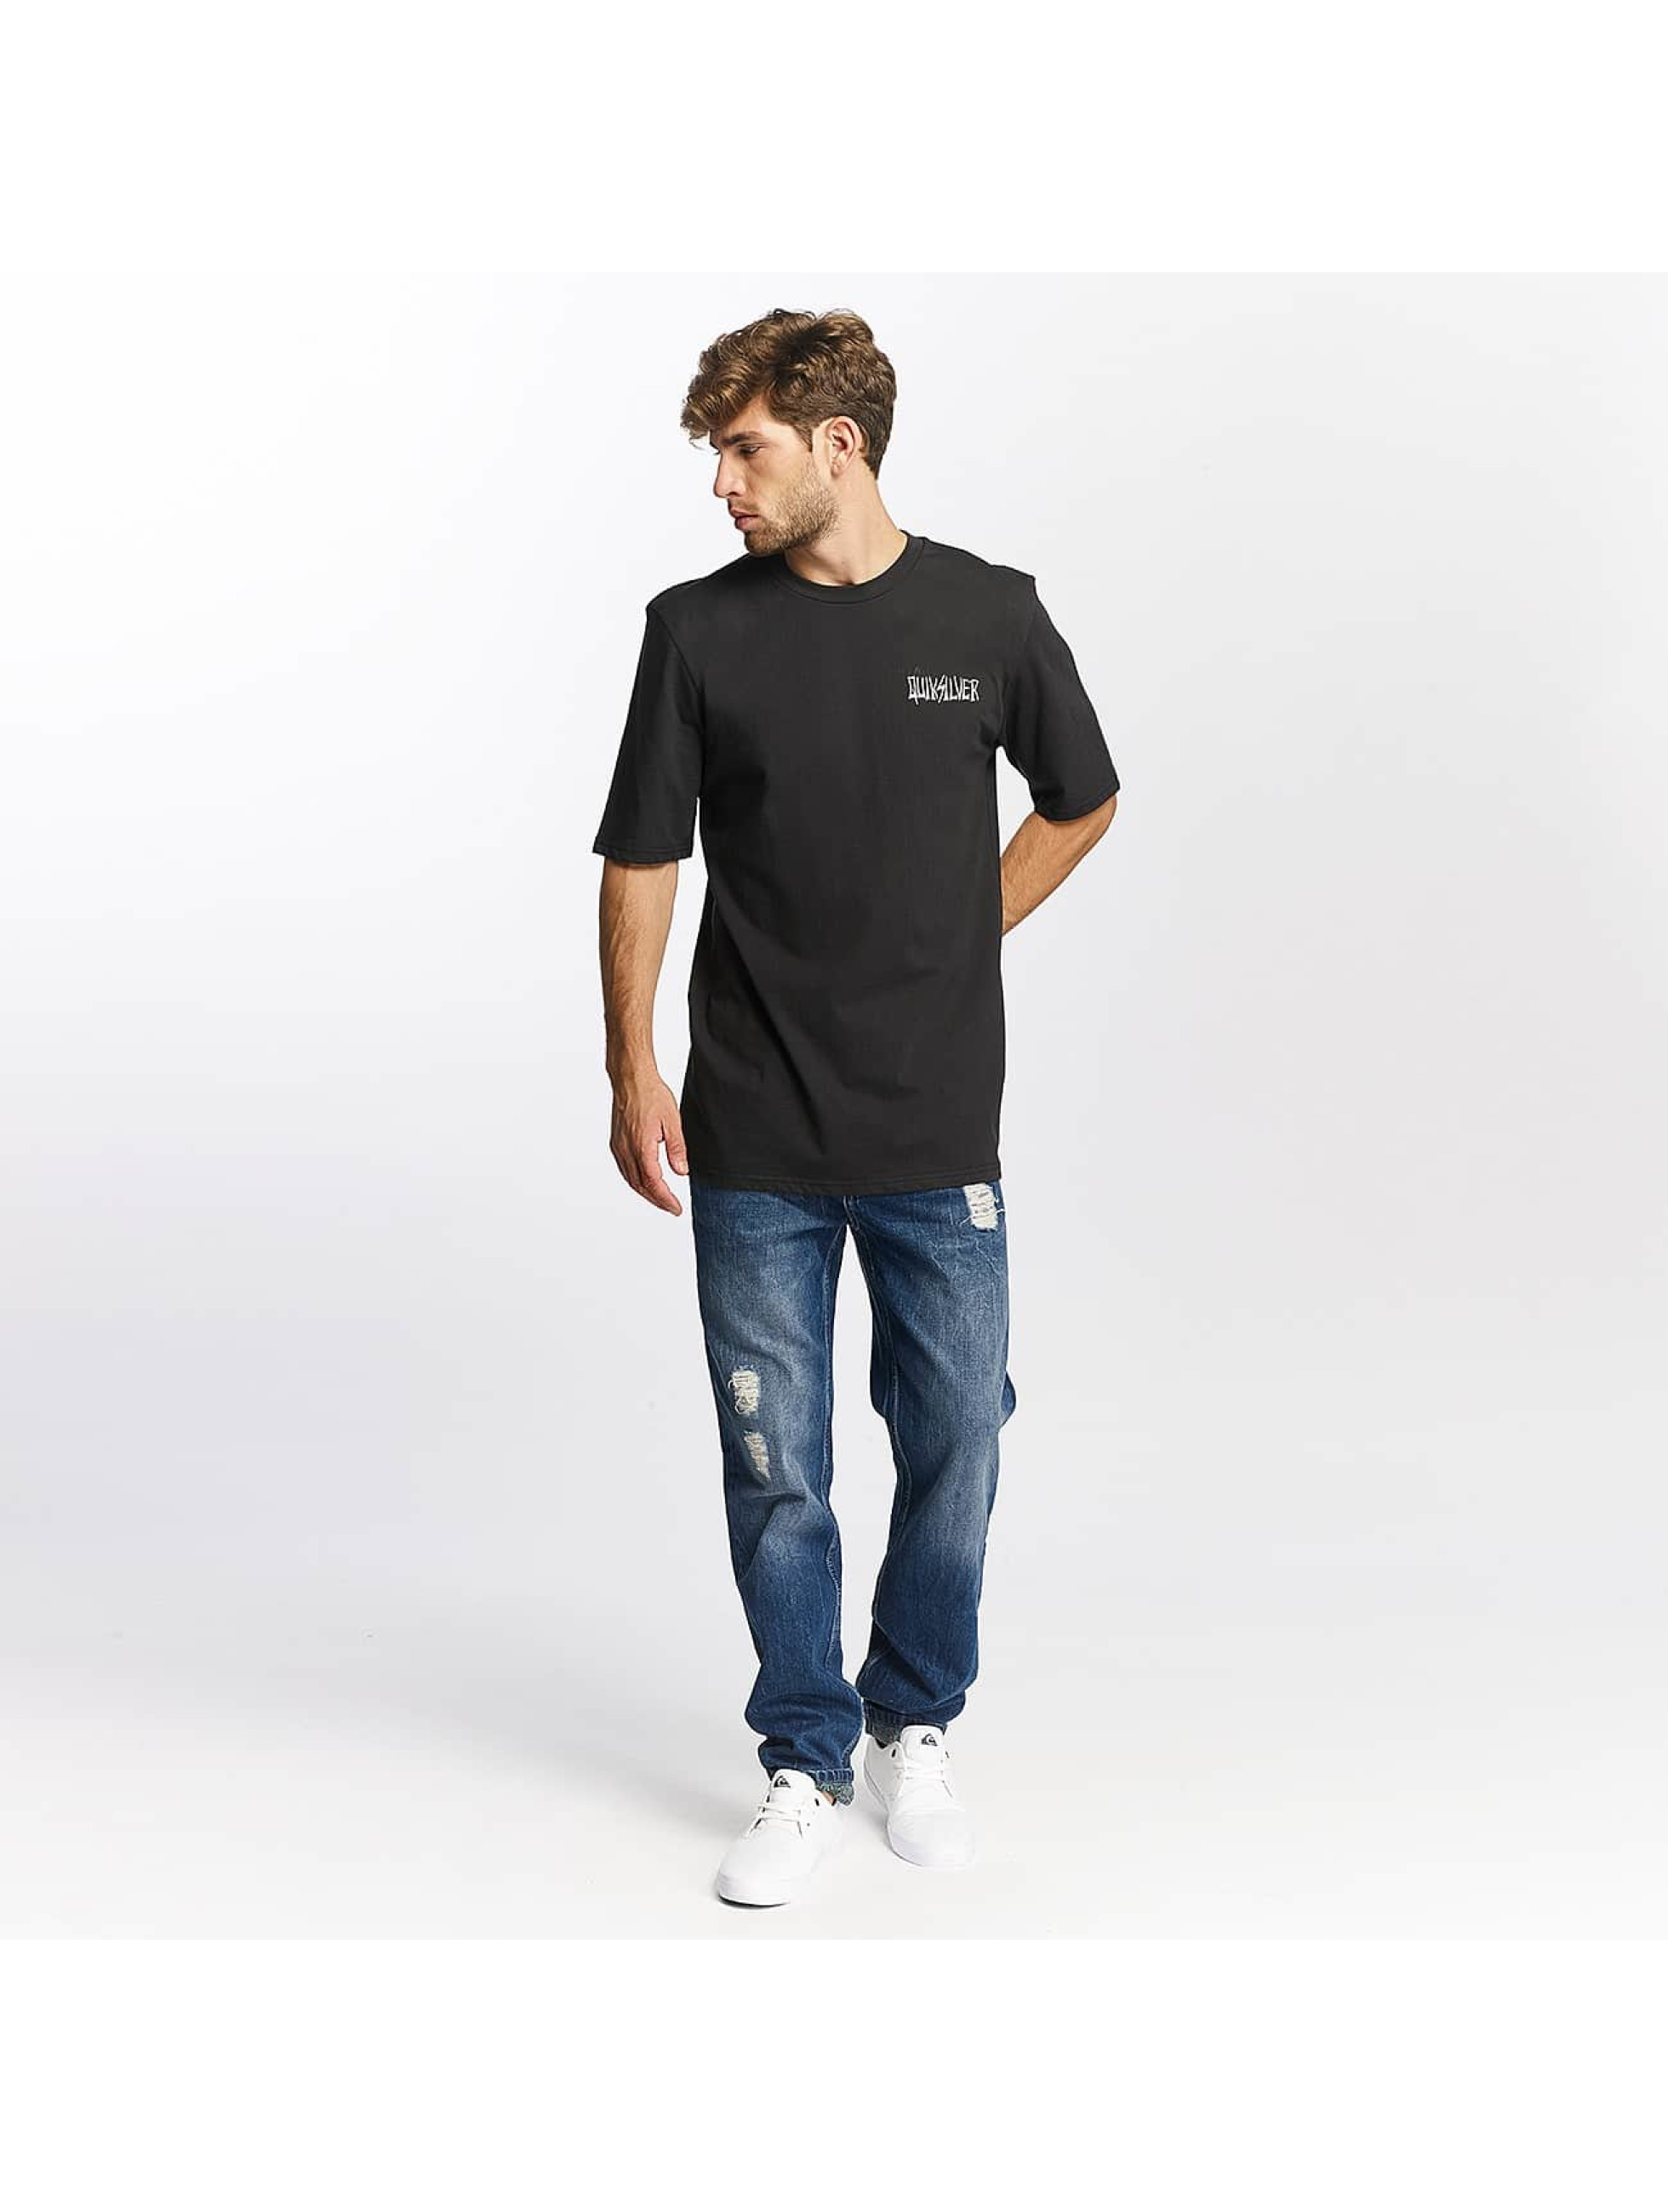 Quiksilver t-shirt Neon Tendencies zwart